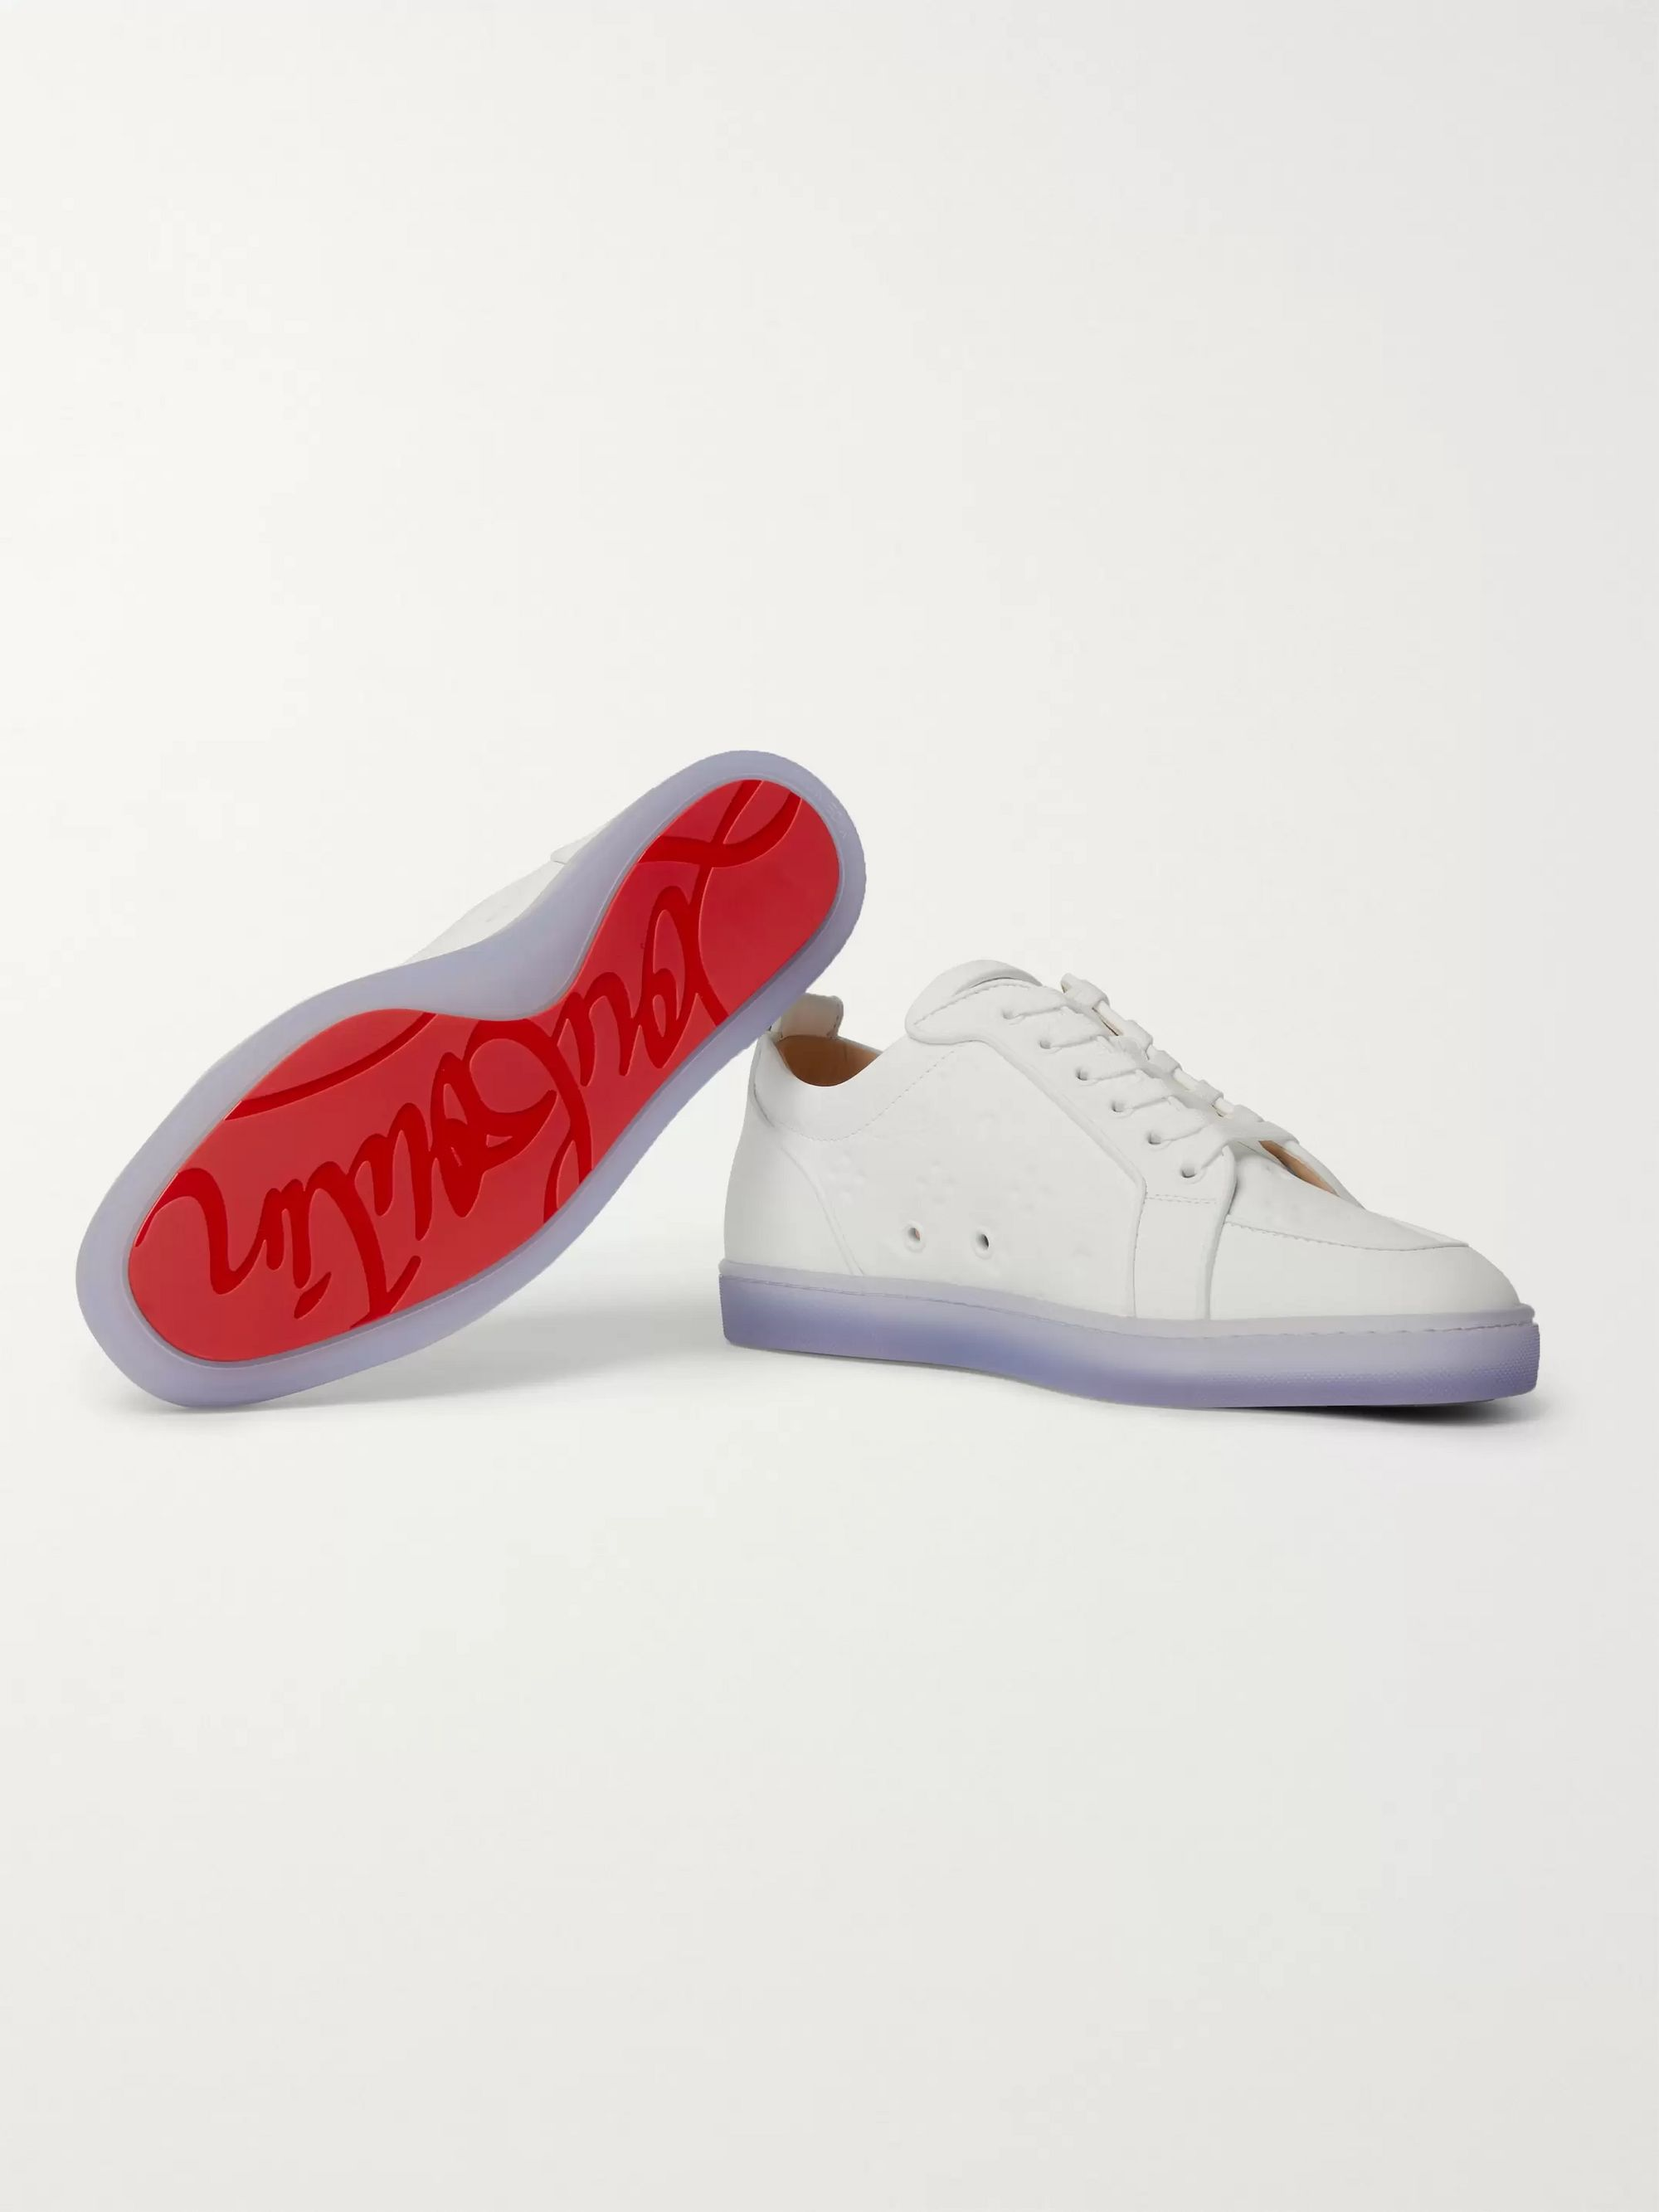 Christian Louboutin Rantulow Orlato Debossed Leather Sneakers